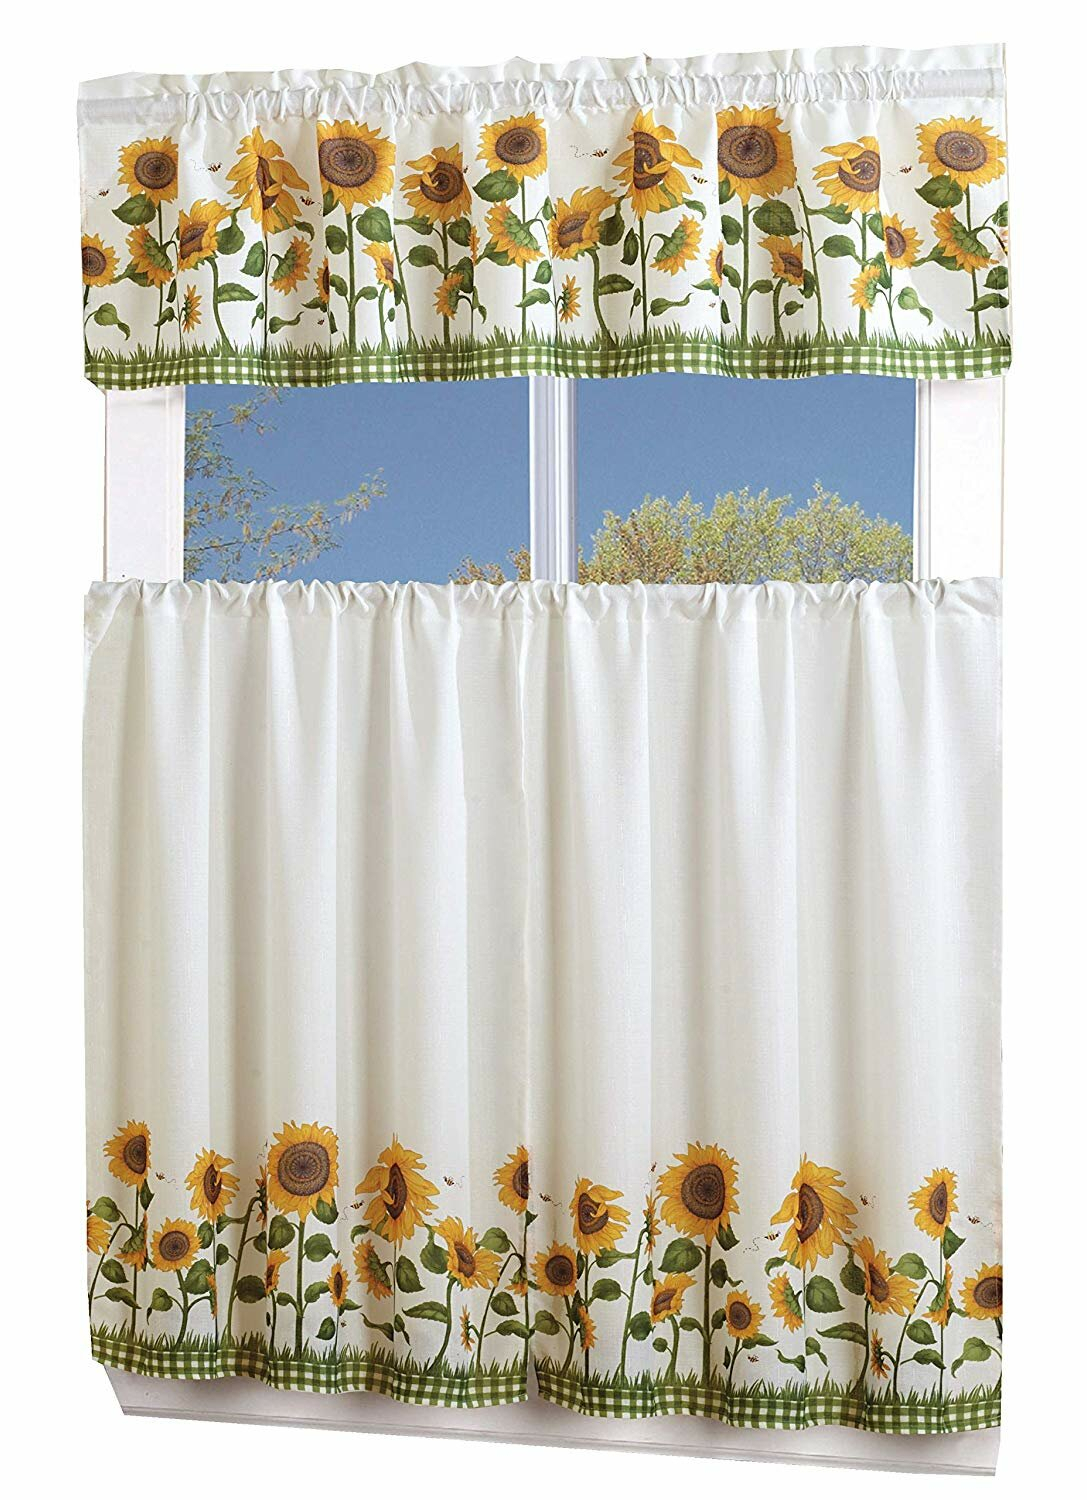 Lamont 3 Piece Sunflower Curtain Set Regarding Traditional Tailored Window Curtains With Embroidered Yellow Sunflowers (View 5 of 20)